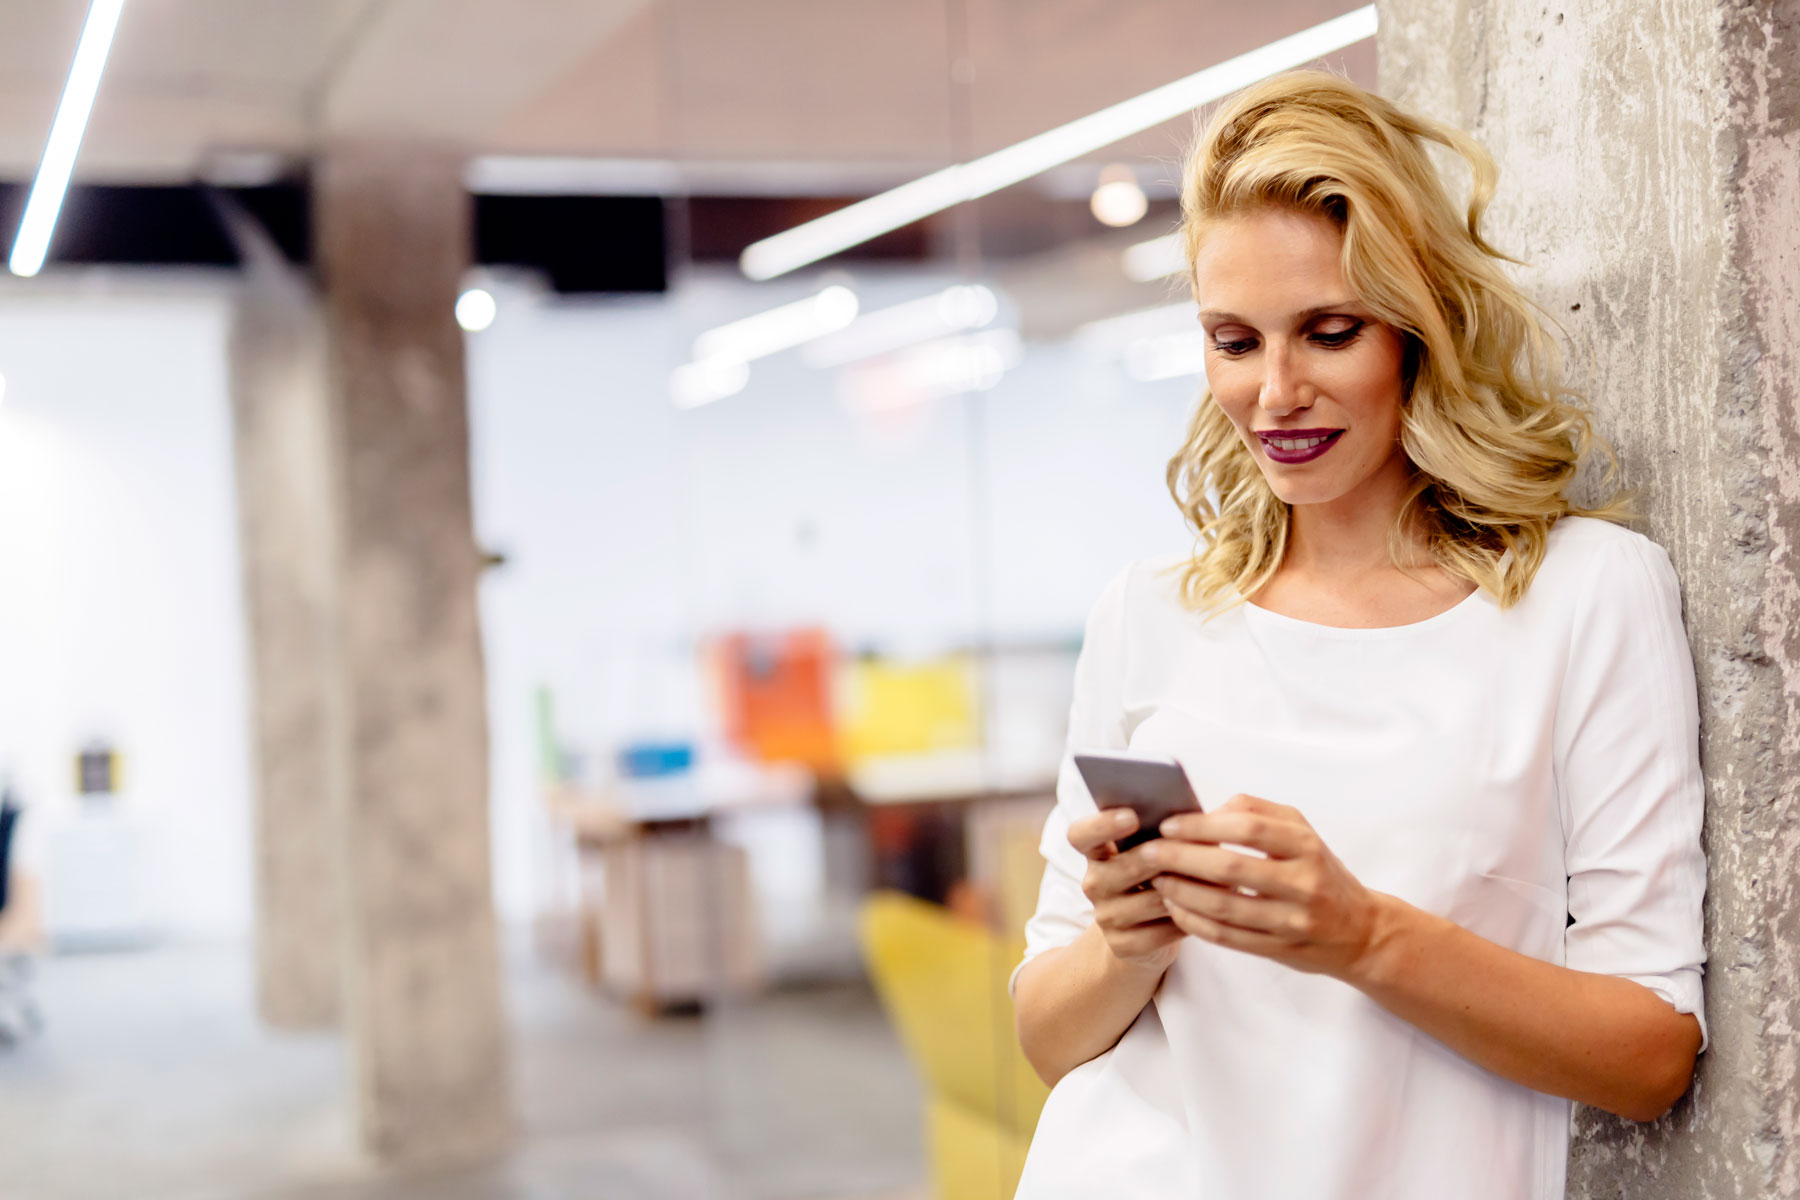 woman looking at bank account on phone